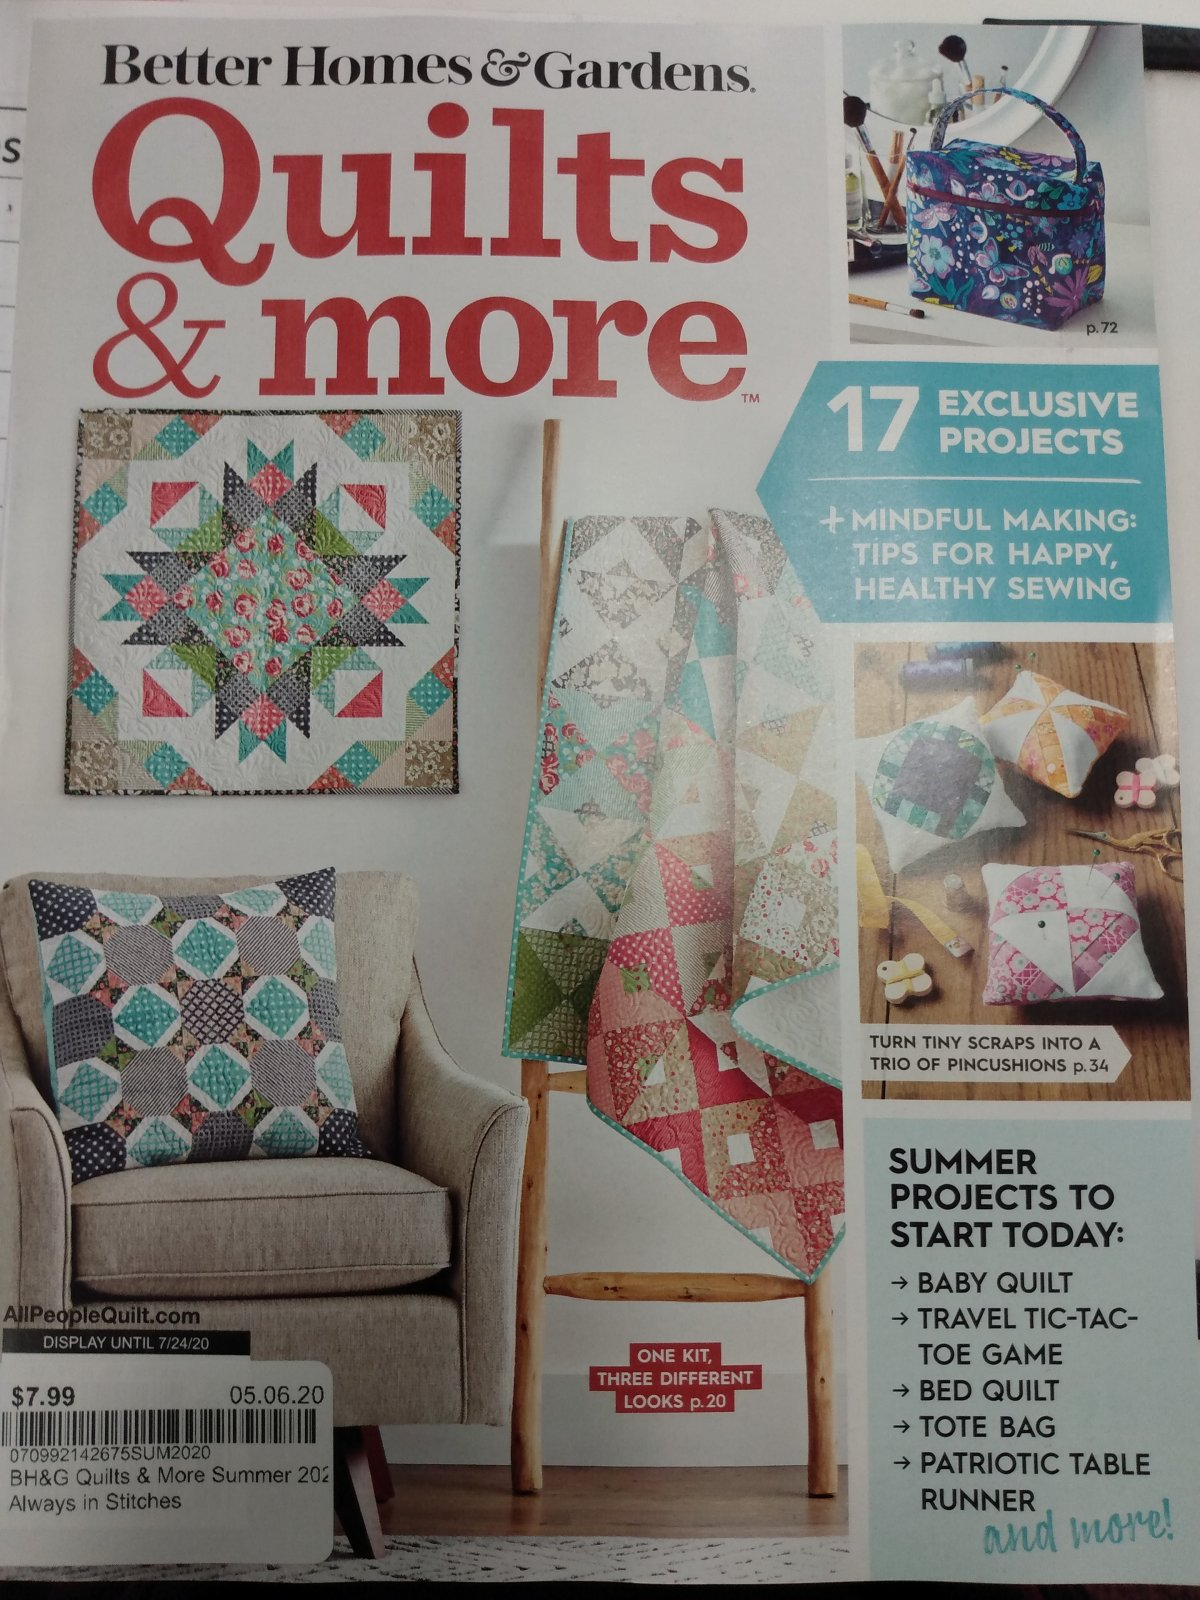 BH&G Quilts & More Summer 2020